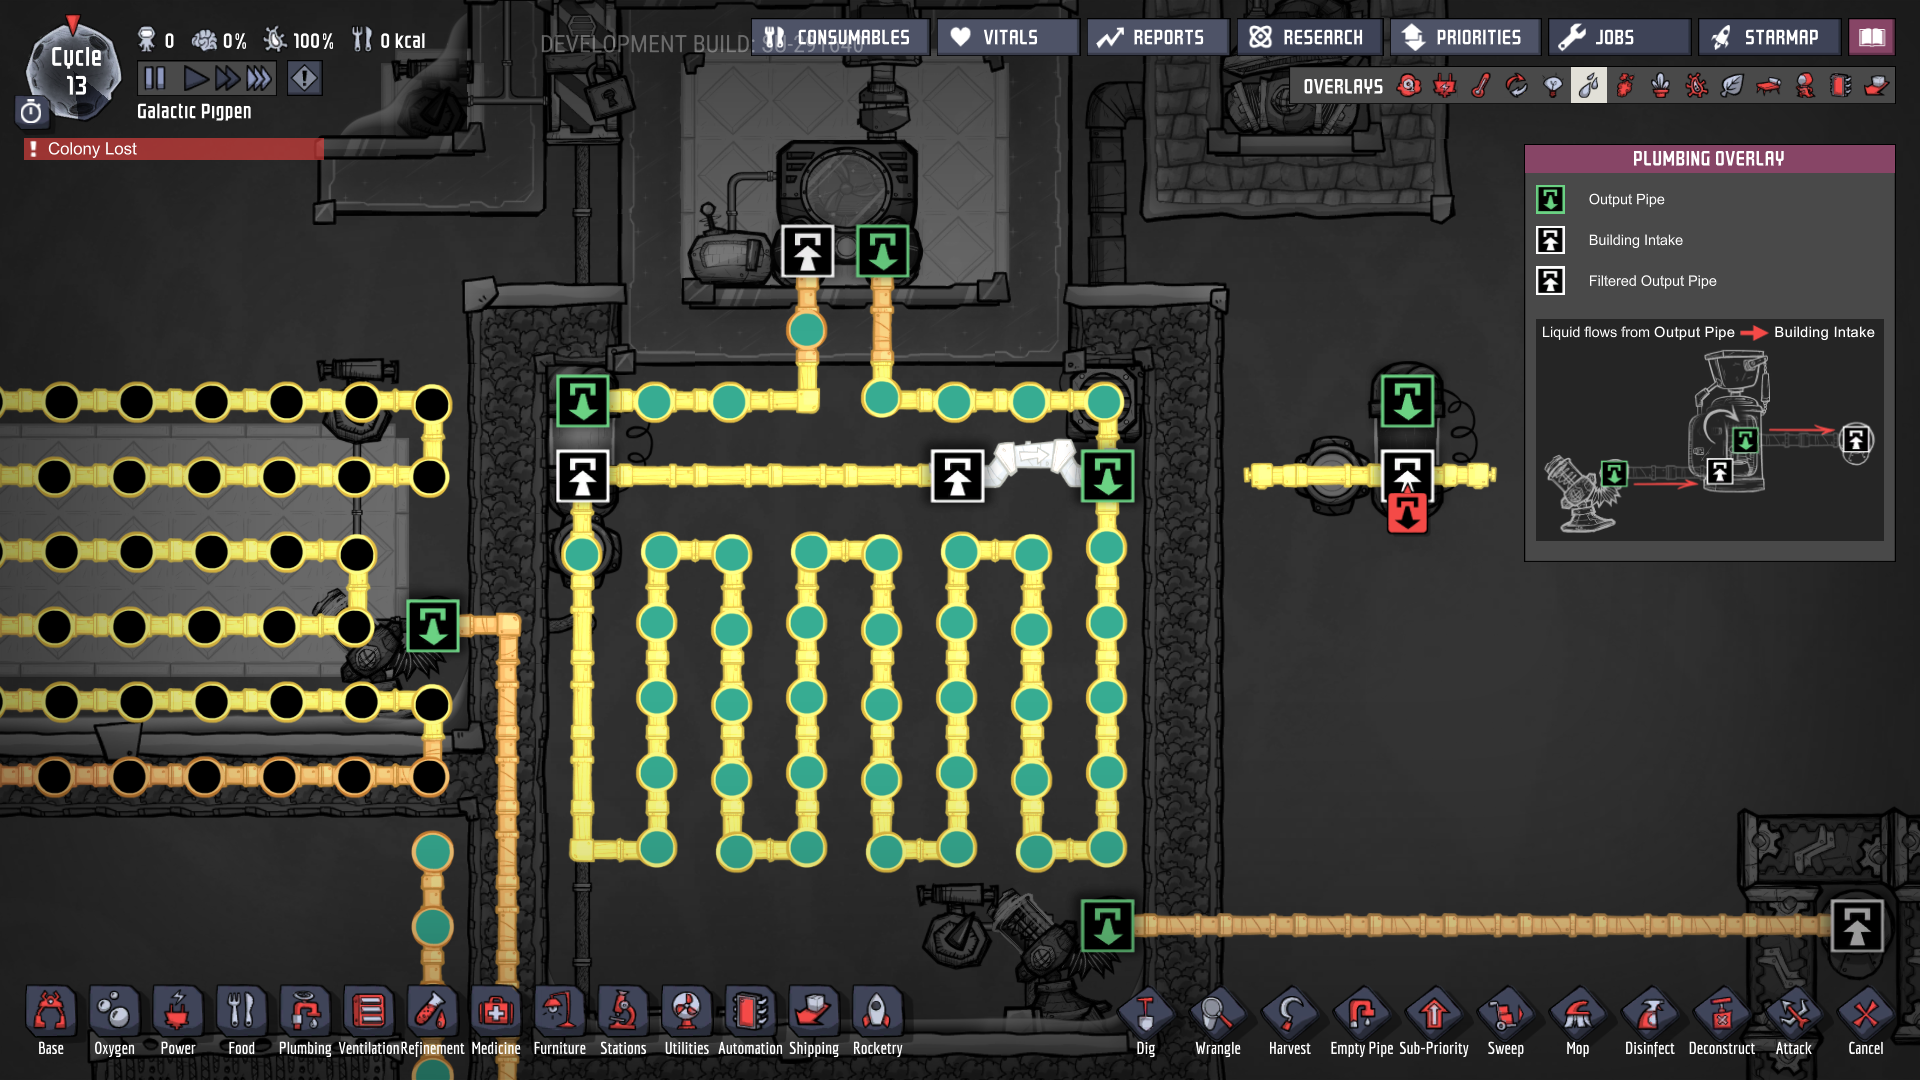 Help with plumbing - [Oxygen Not Included] - General Discussion